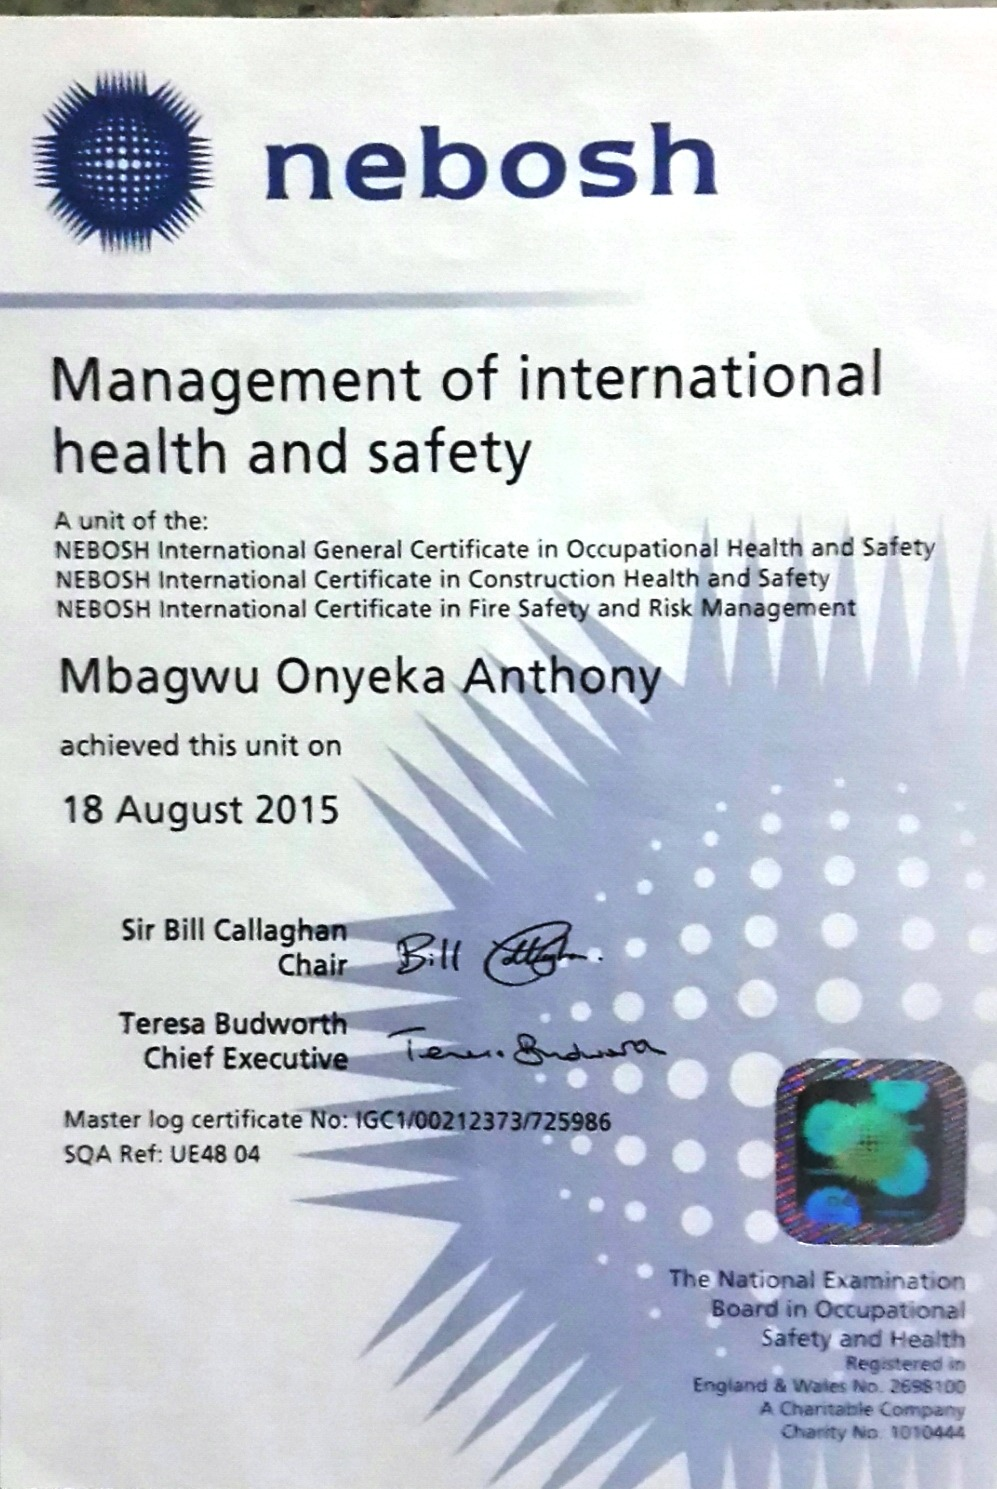 nebosh igc 3 Nebosh igc 3 management report samplepdf free download here nebosh international general certificate in occupational.